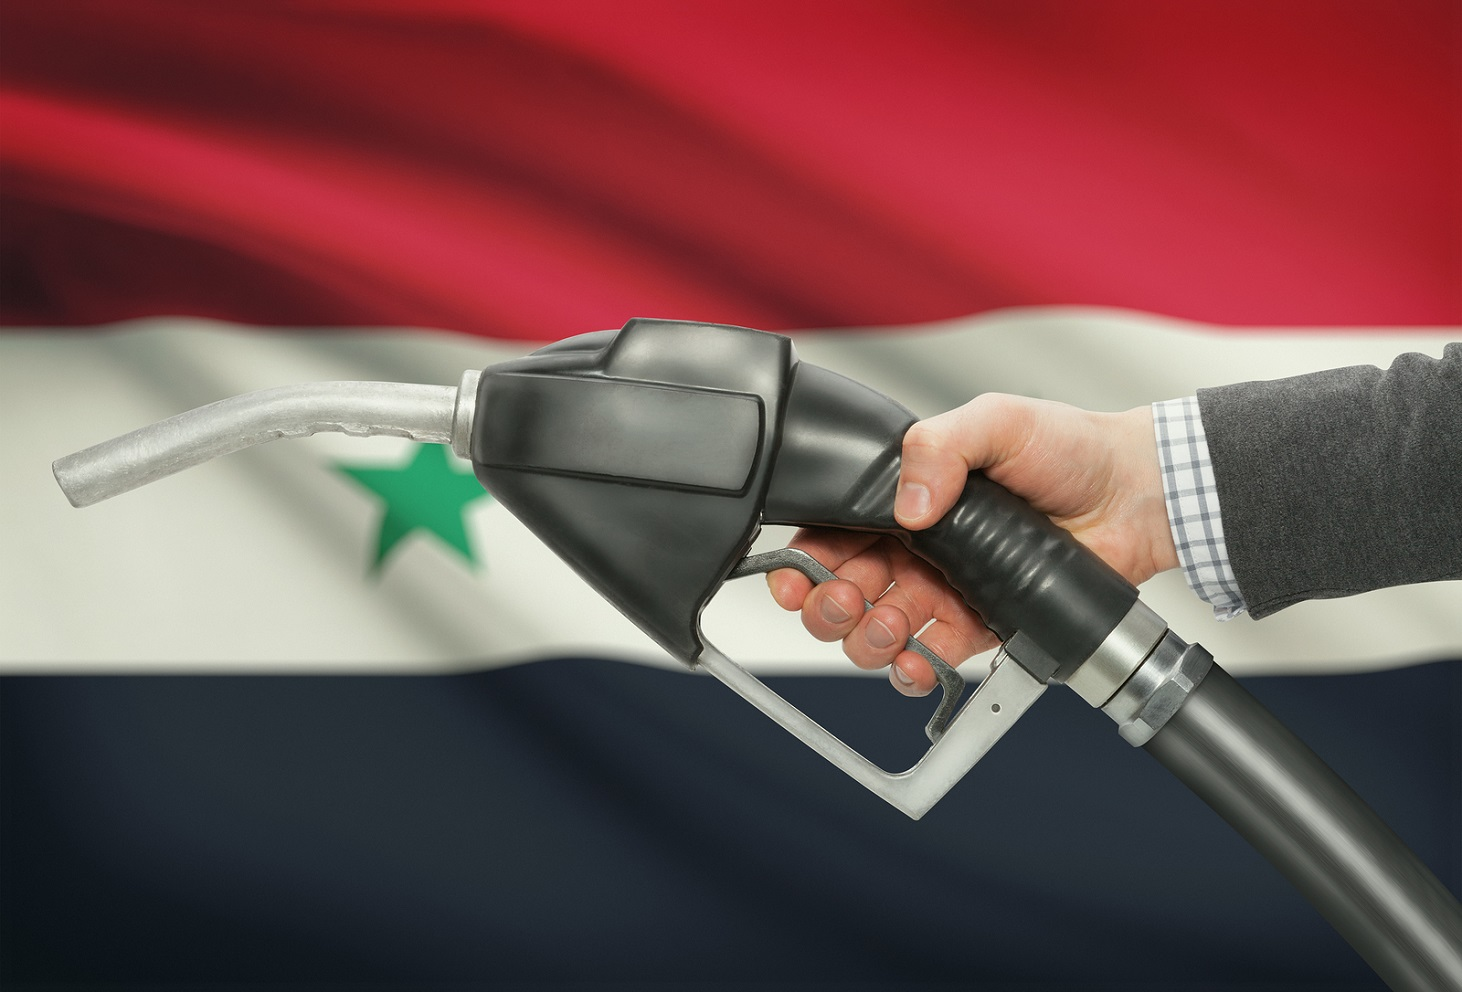 Fuel pump nozzle in hand with flag on background - Syria